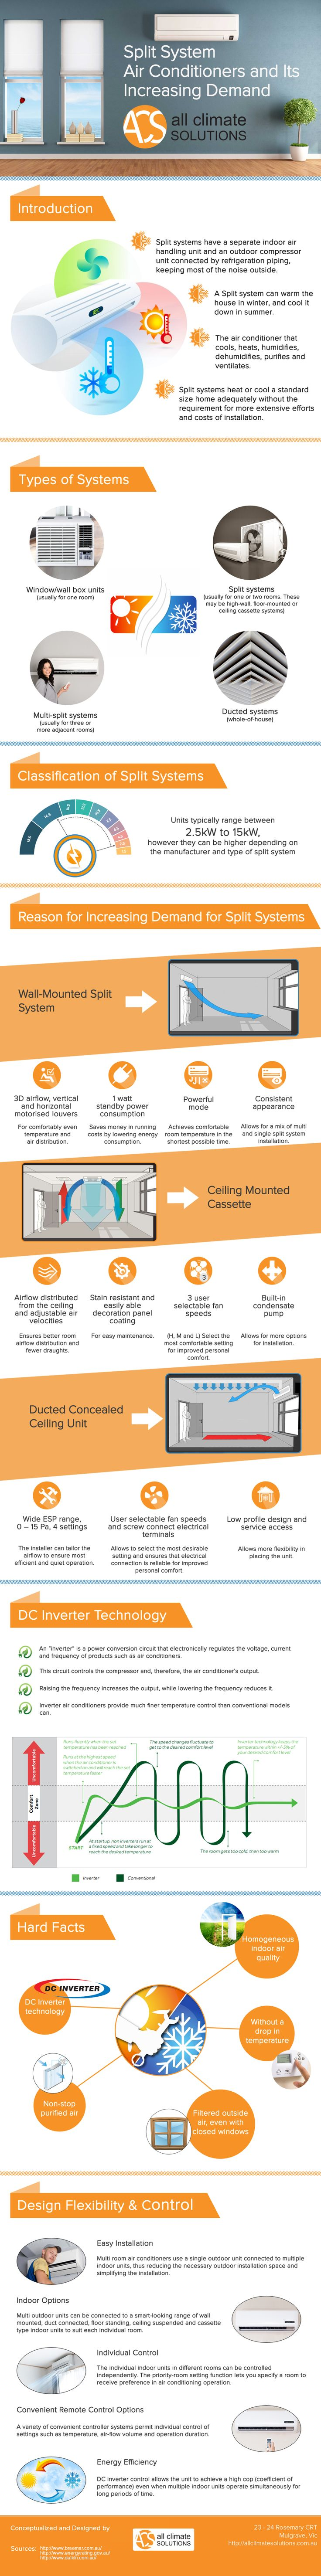 Split System Air Conditioners and It's Increasing Demand #infographic #HomeImprovement